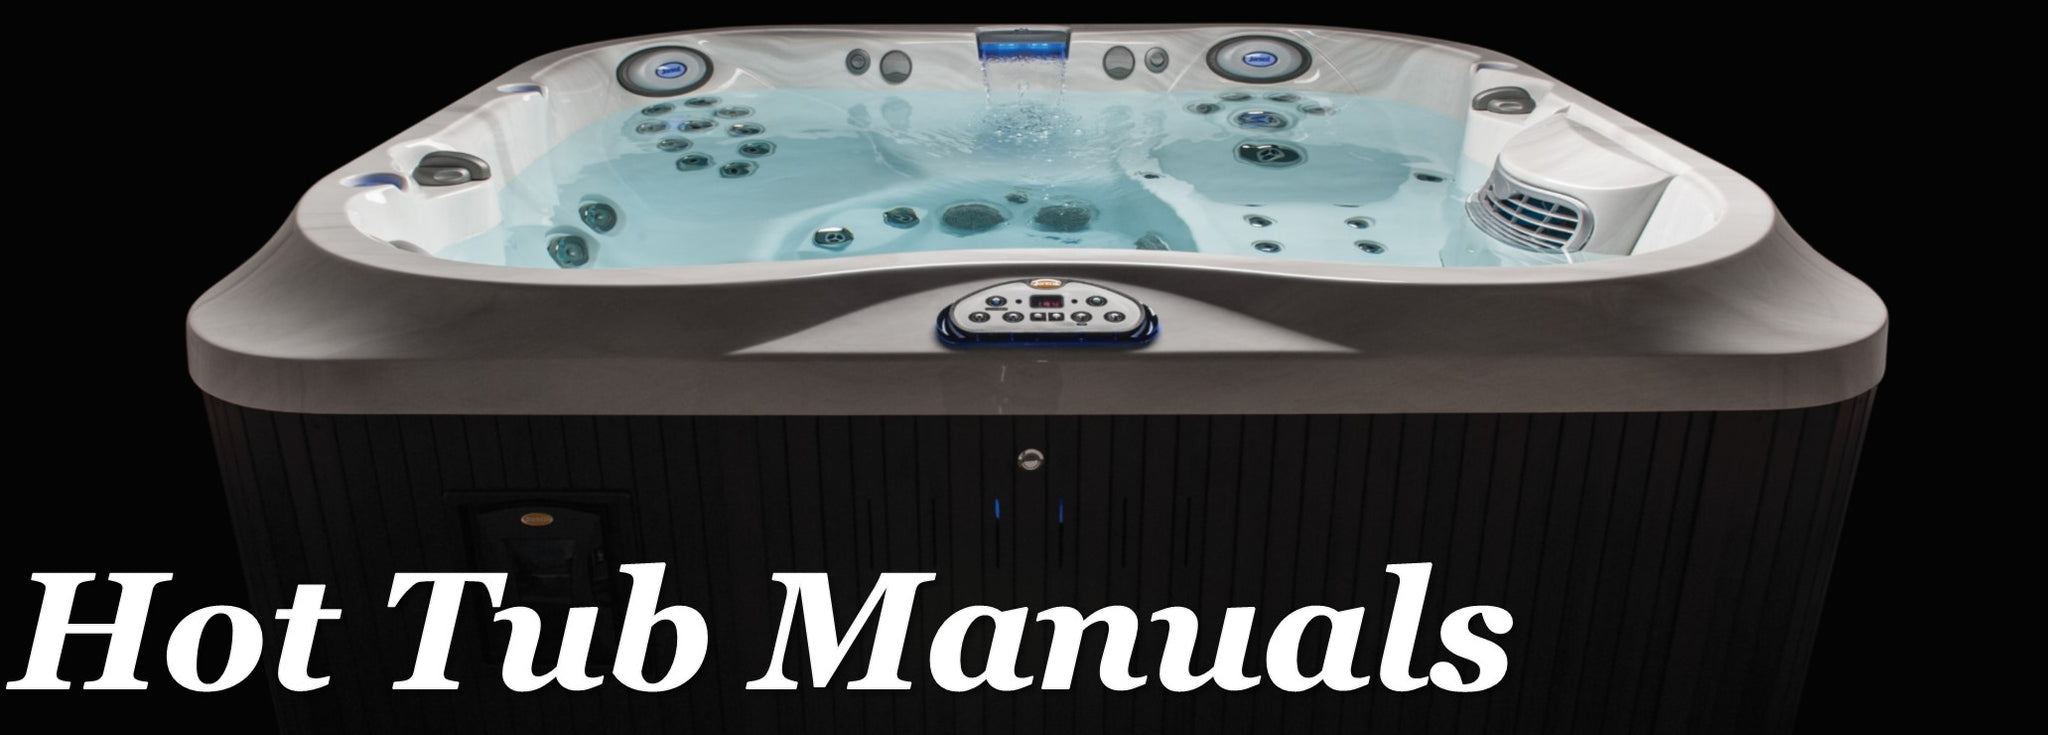 hot tub manuals user guides outdoor living rh outdoorlivinghottubs co uk Hot Tub Tips Hot Tub Chemicals For Dummies